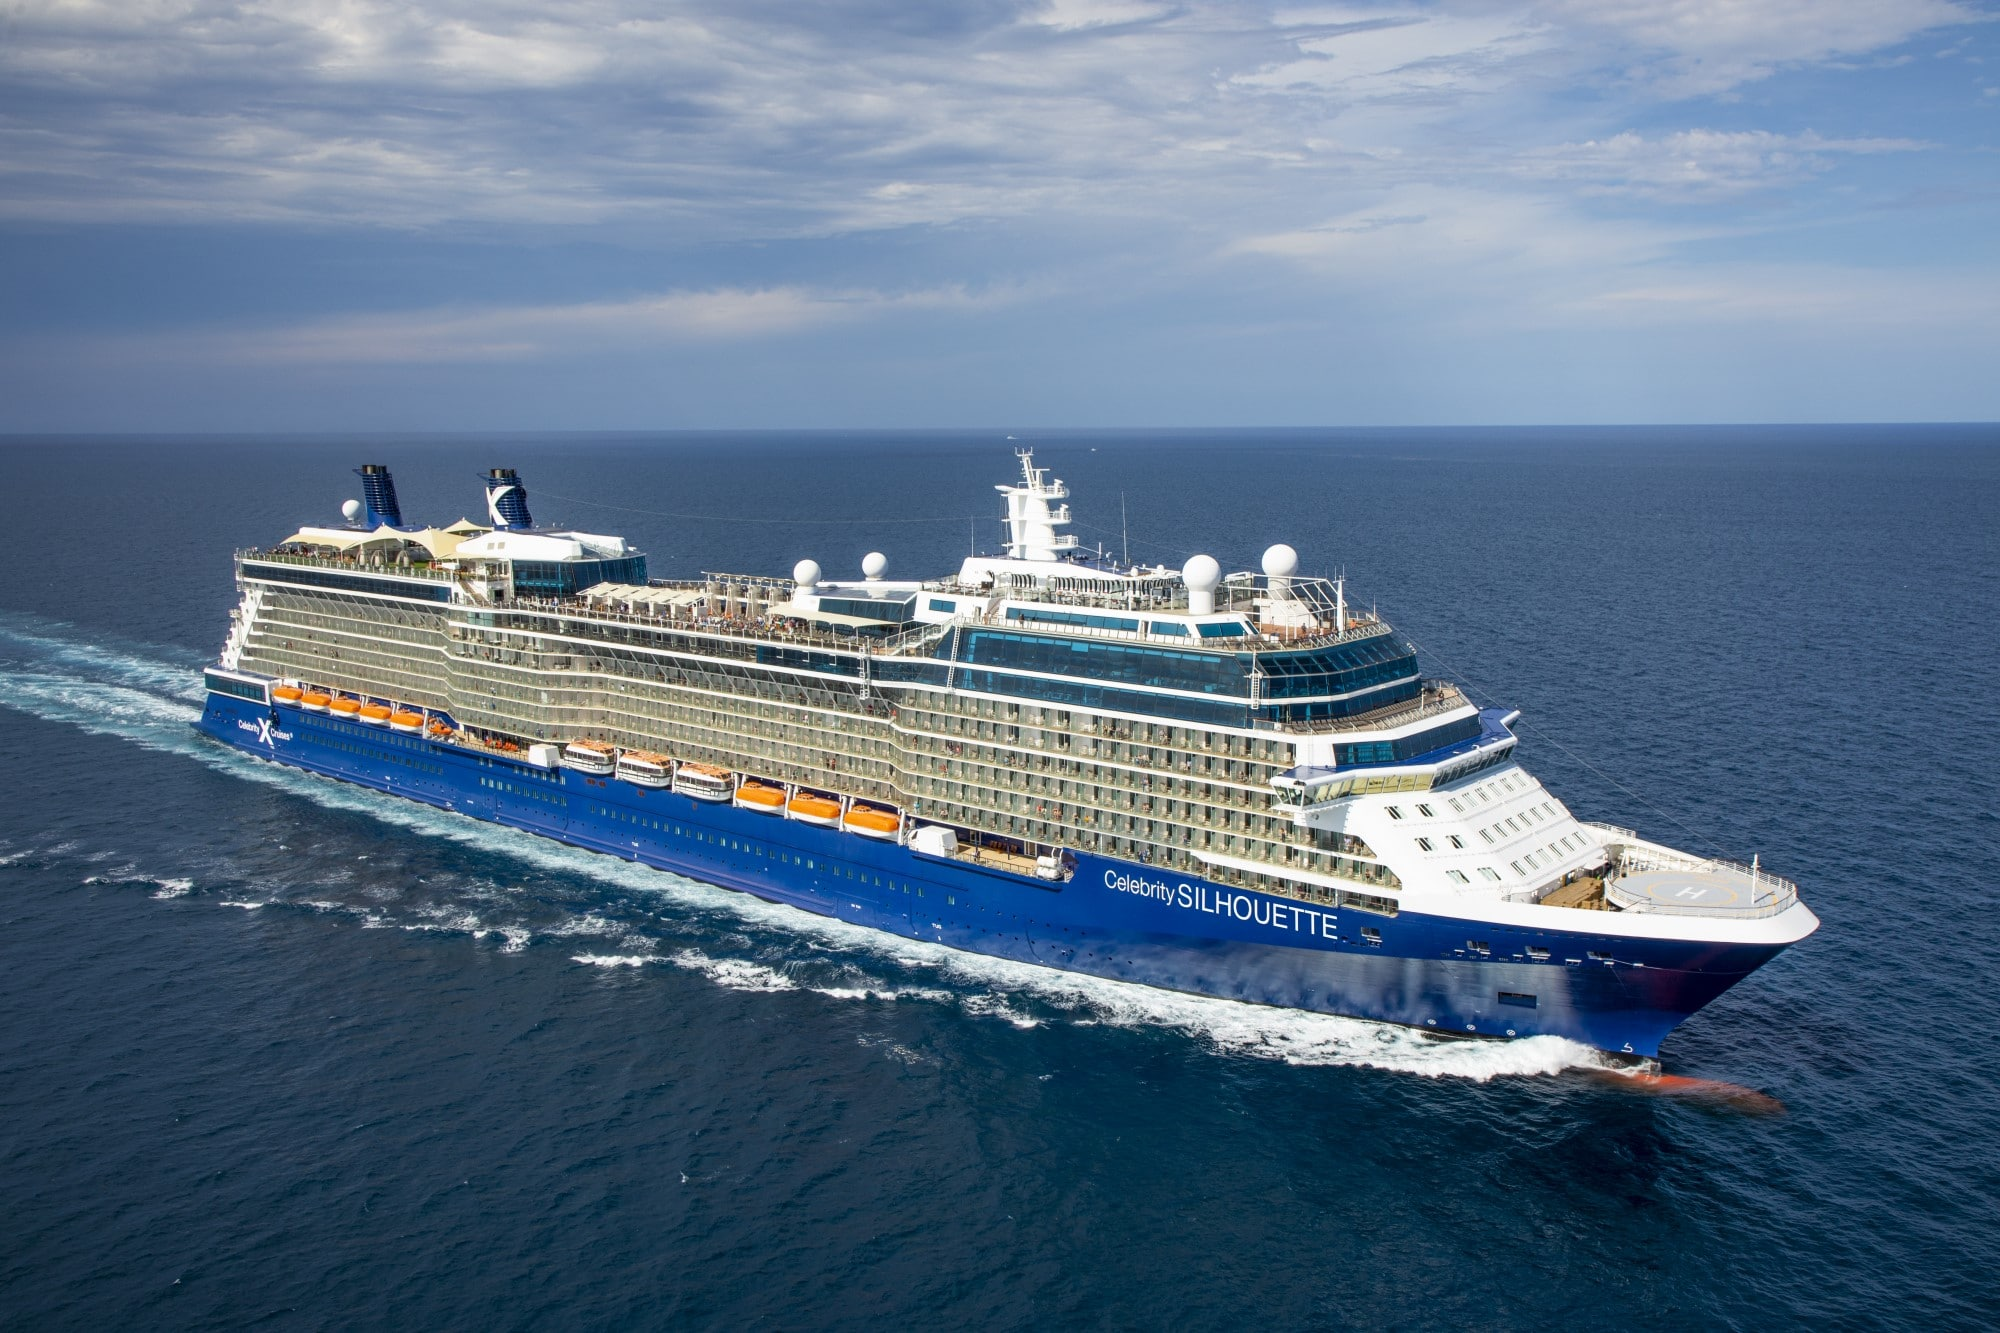 SAGA Cruises Spirit of Discovery